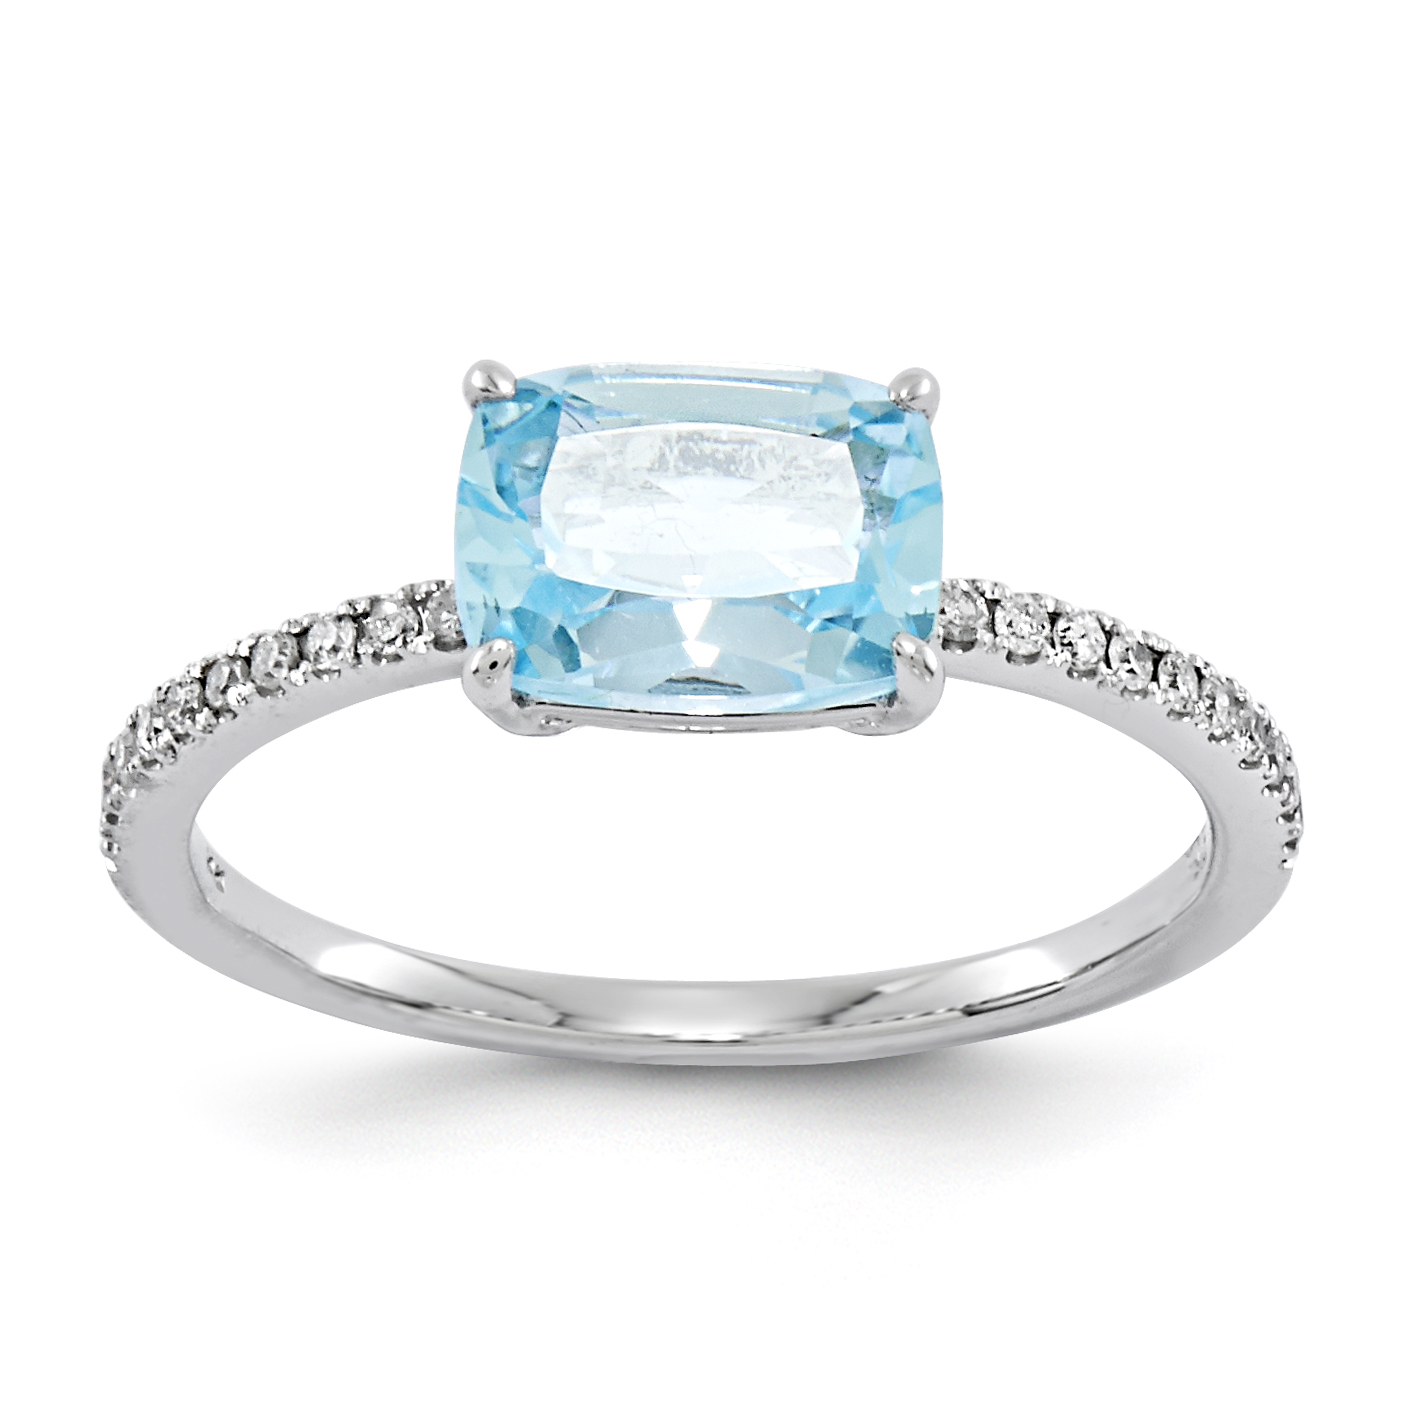 14k White Gold Diamond and Blue Topaz Square Ring by Saris and Things QG